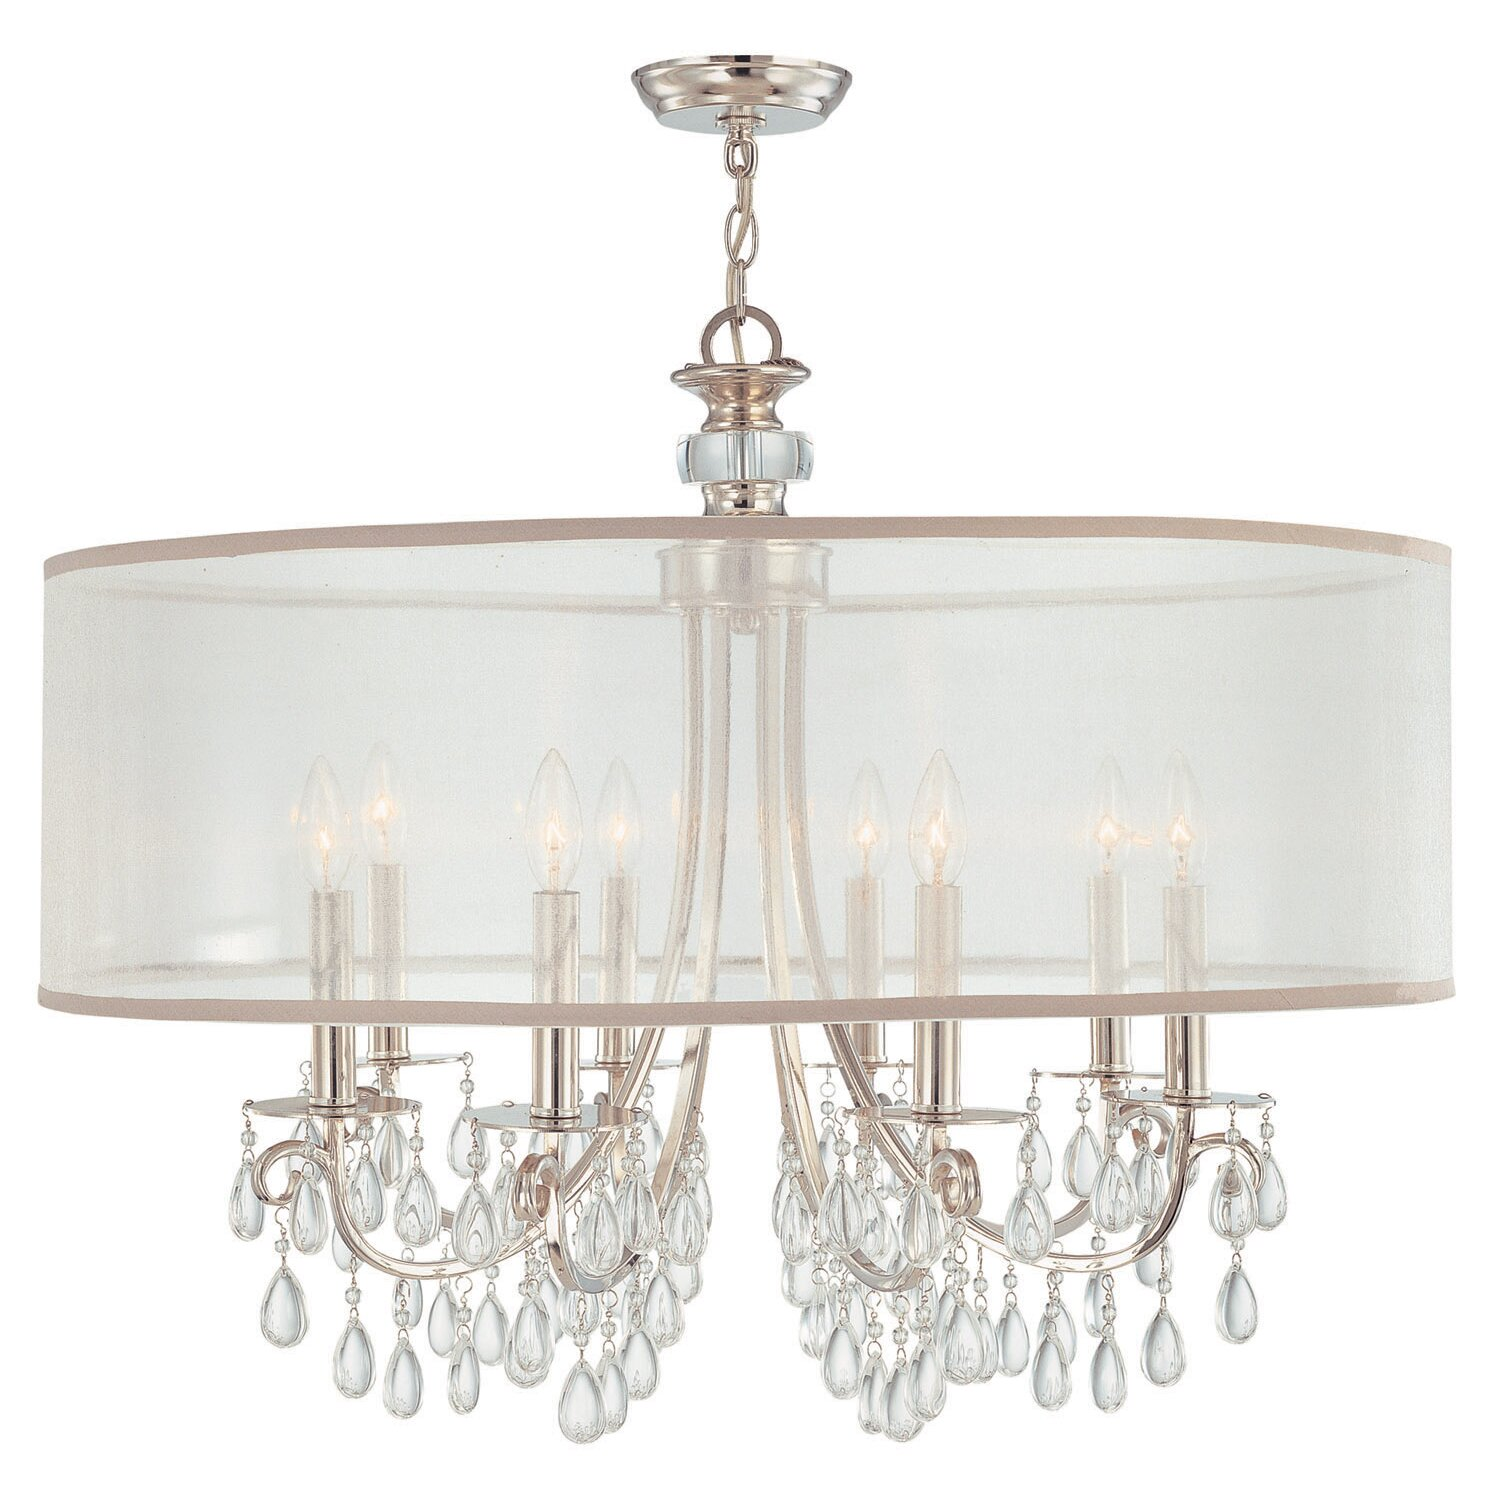 crystorama hampton 8 light chandelier reviews wayfair. Black Bedroom Furniture Sets. Home Design Ideas